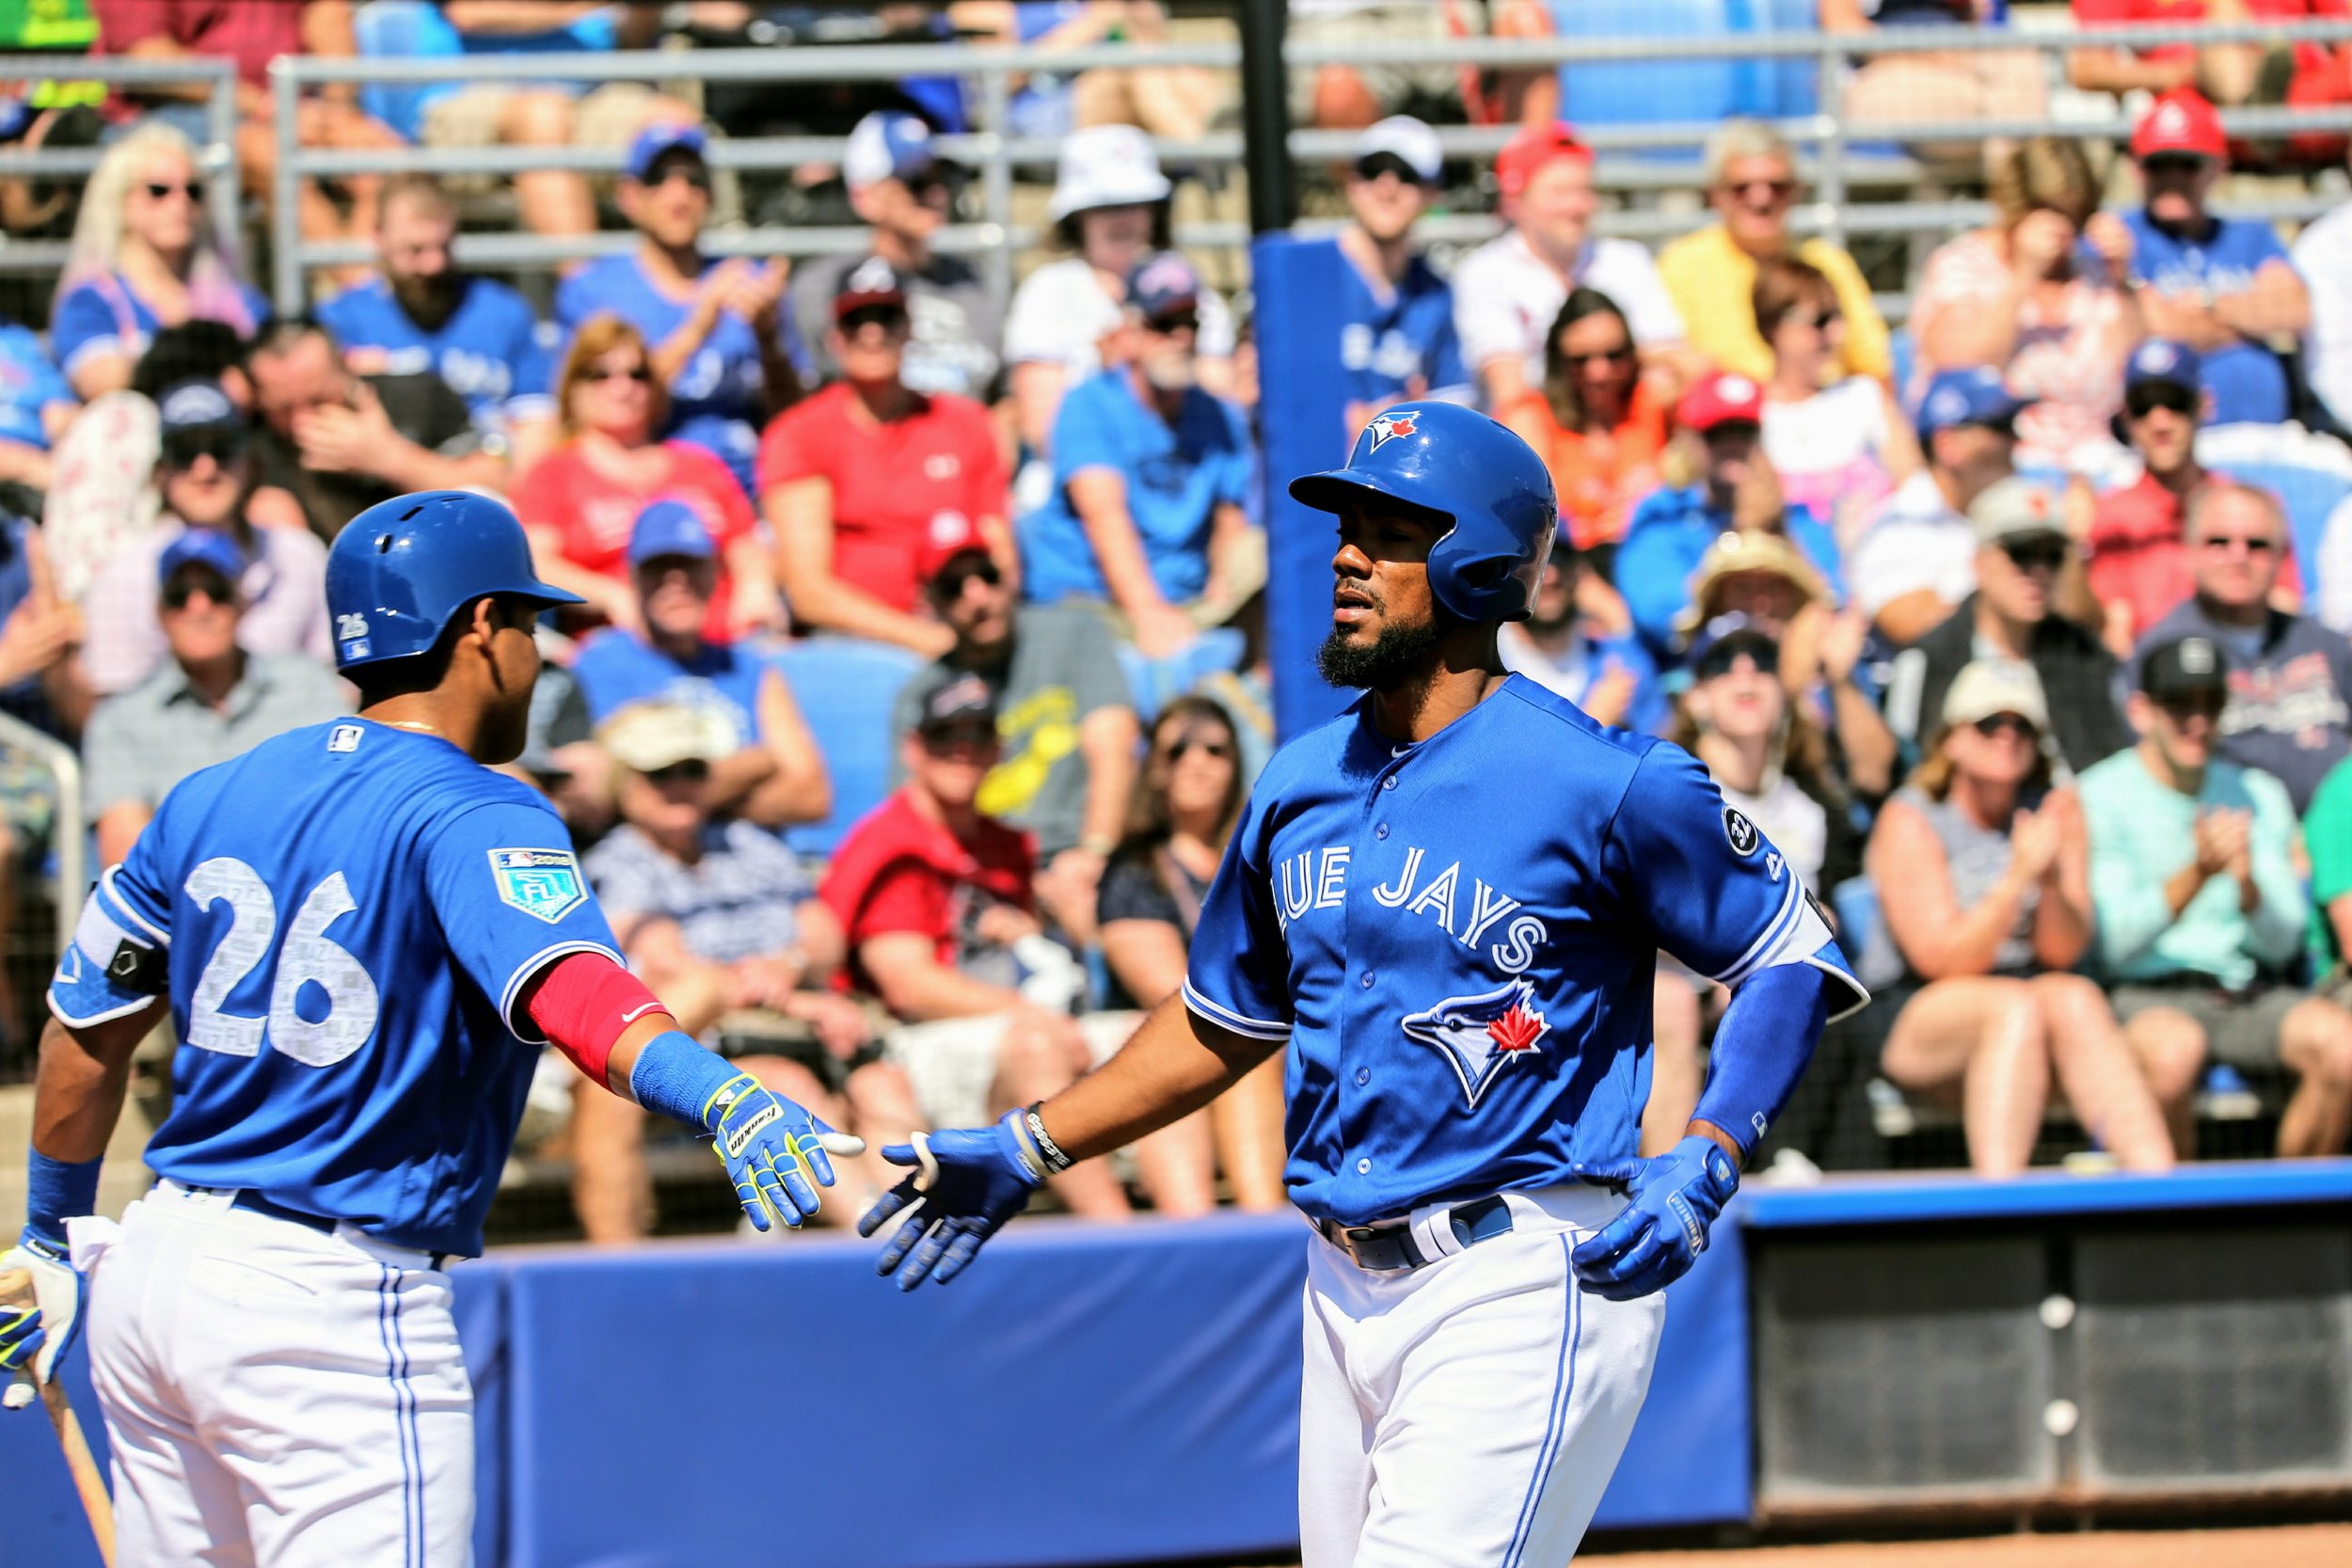 Teoscar Hernandez (right) receives congratulations from Yangervis Solarte after his solo home run in the bottom of the third inning.